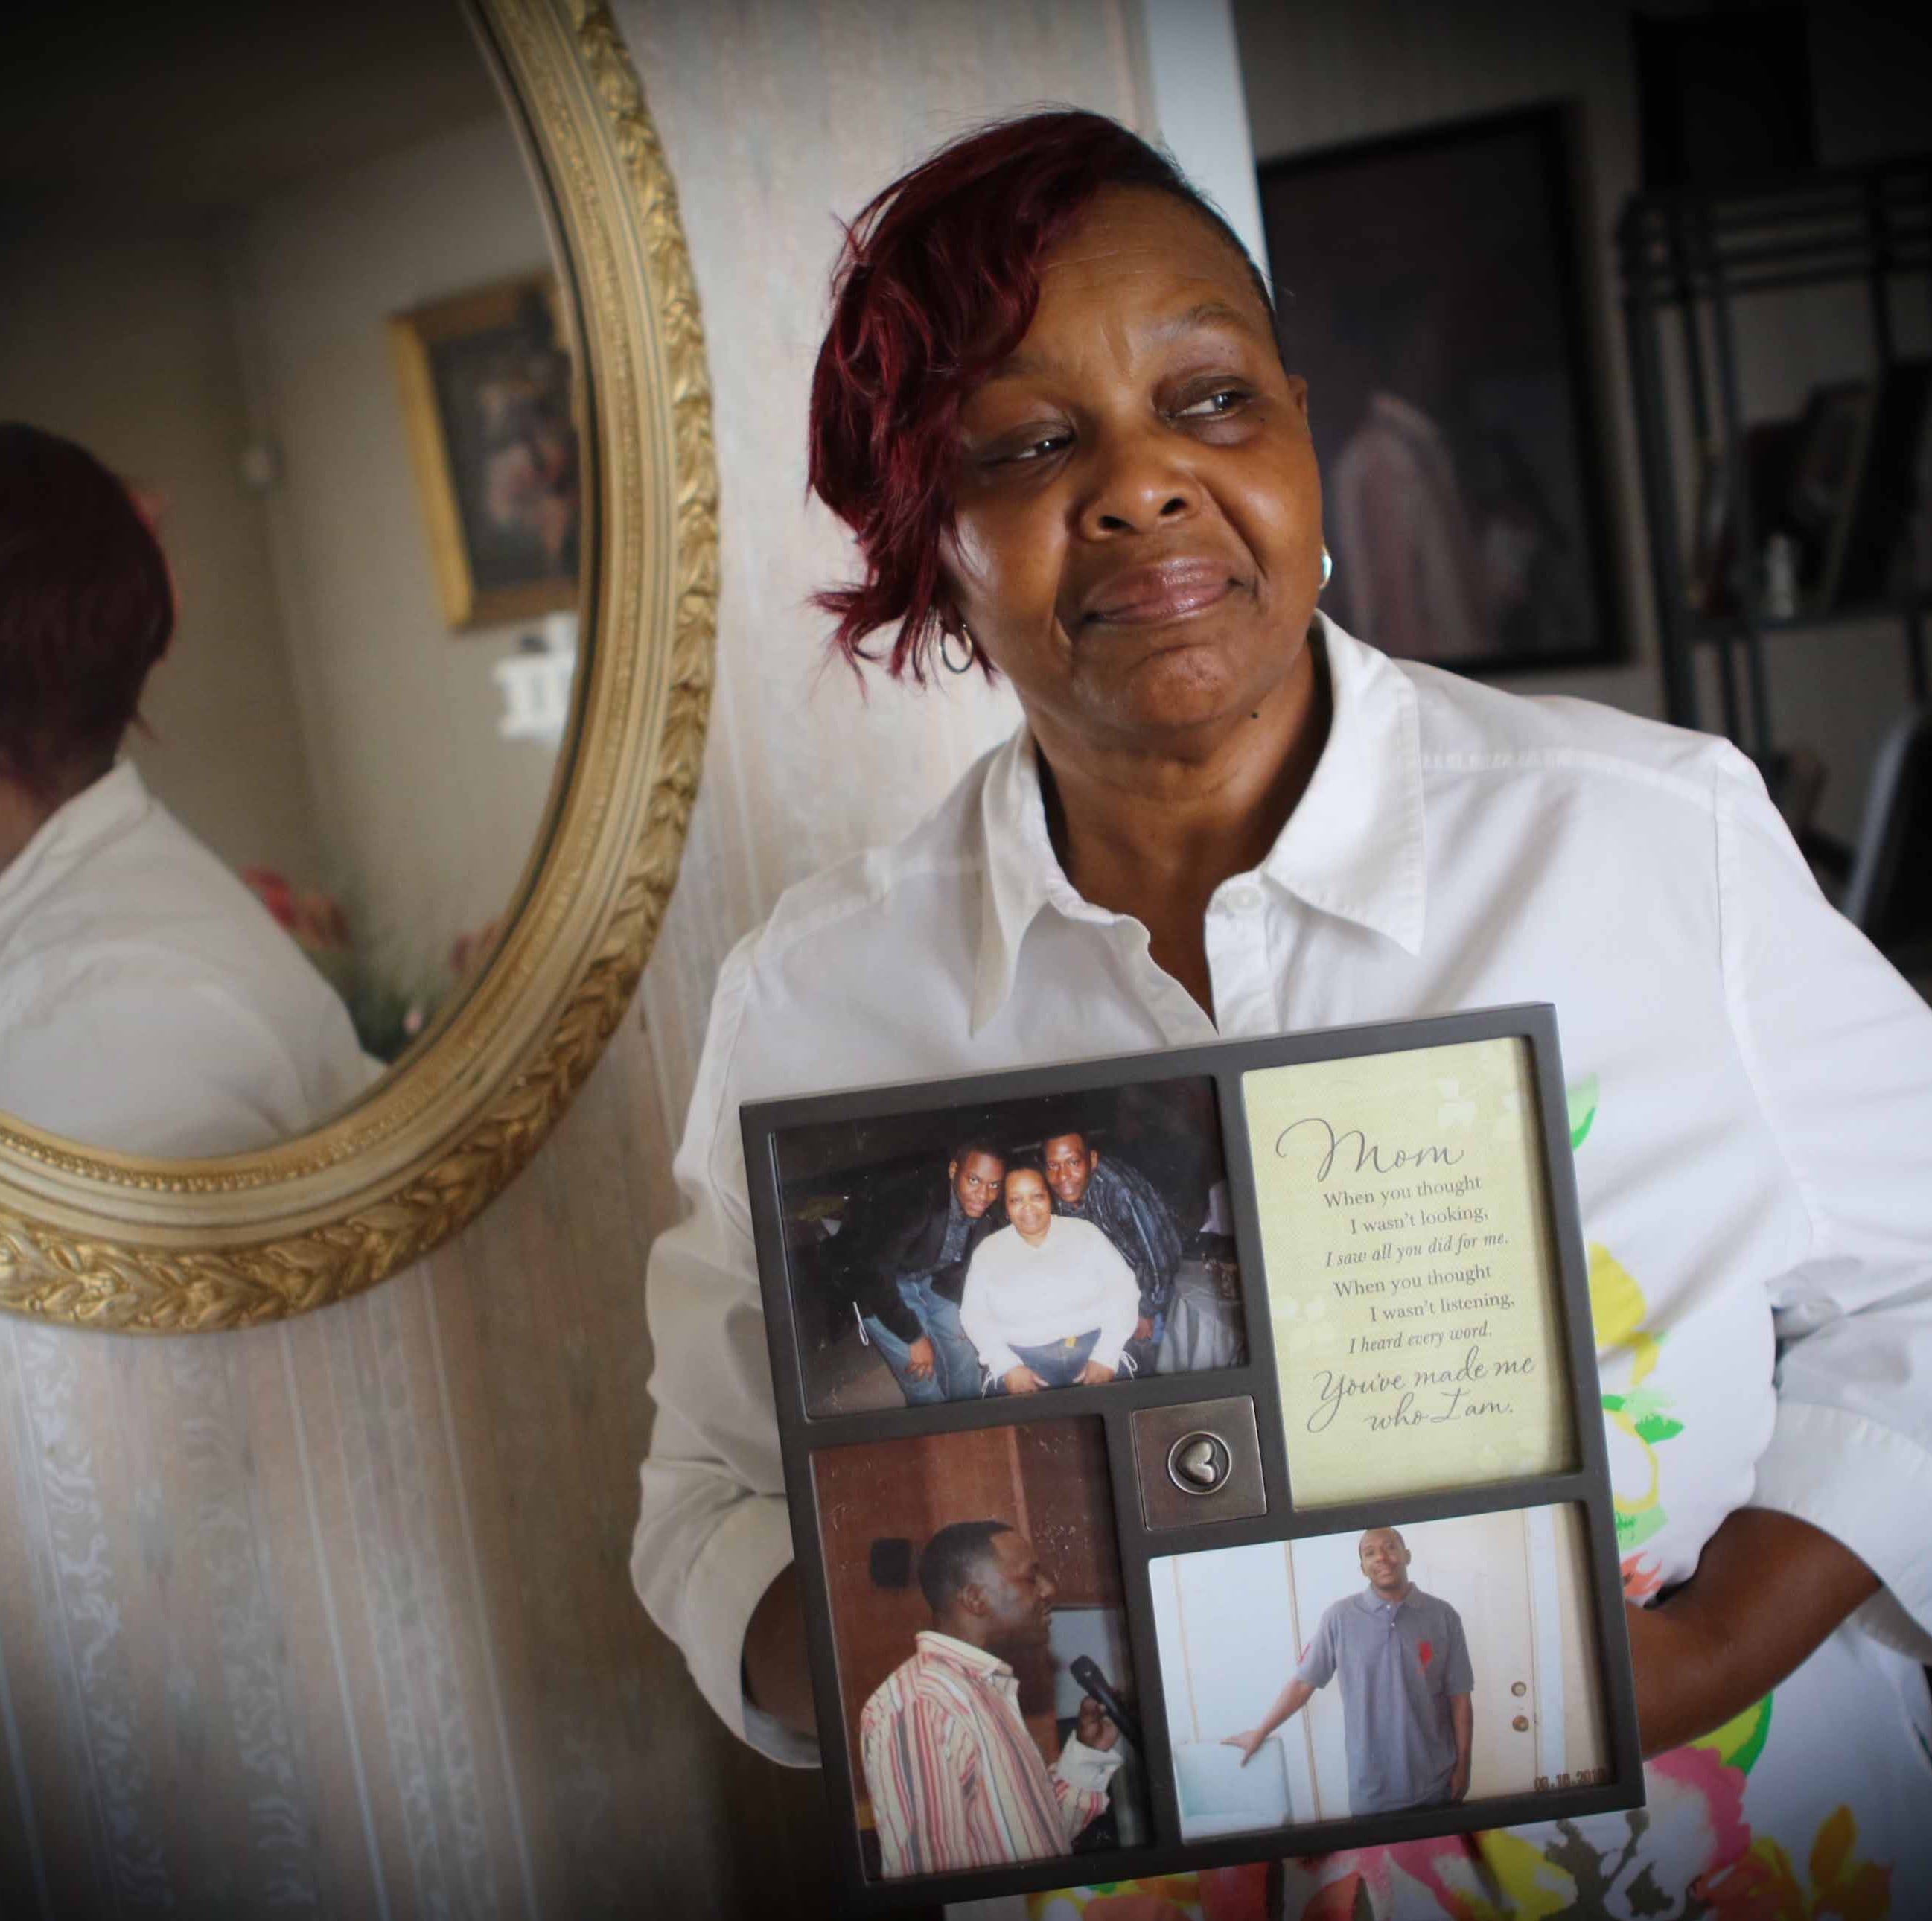 She booked her own son in prison. Now, she uses his drug overdose to save others